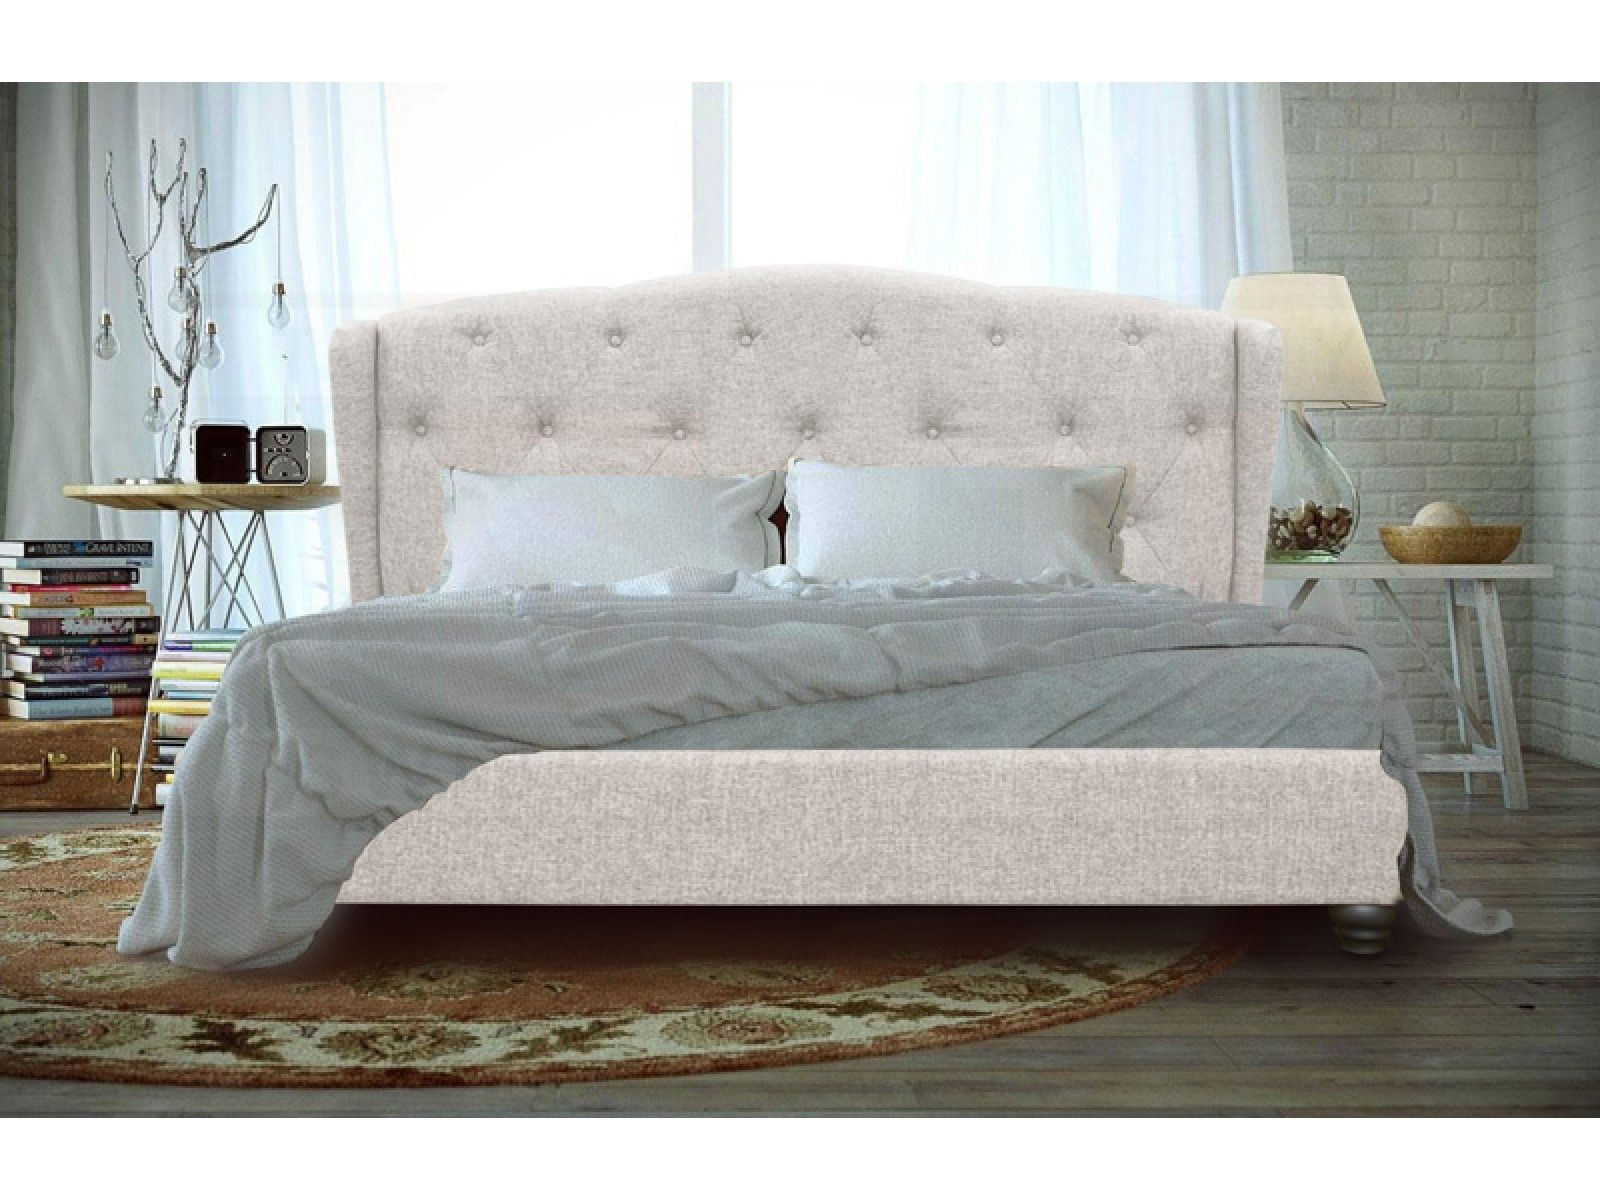 Comfortable Queen Size Bed Frame With Storage Underneath